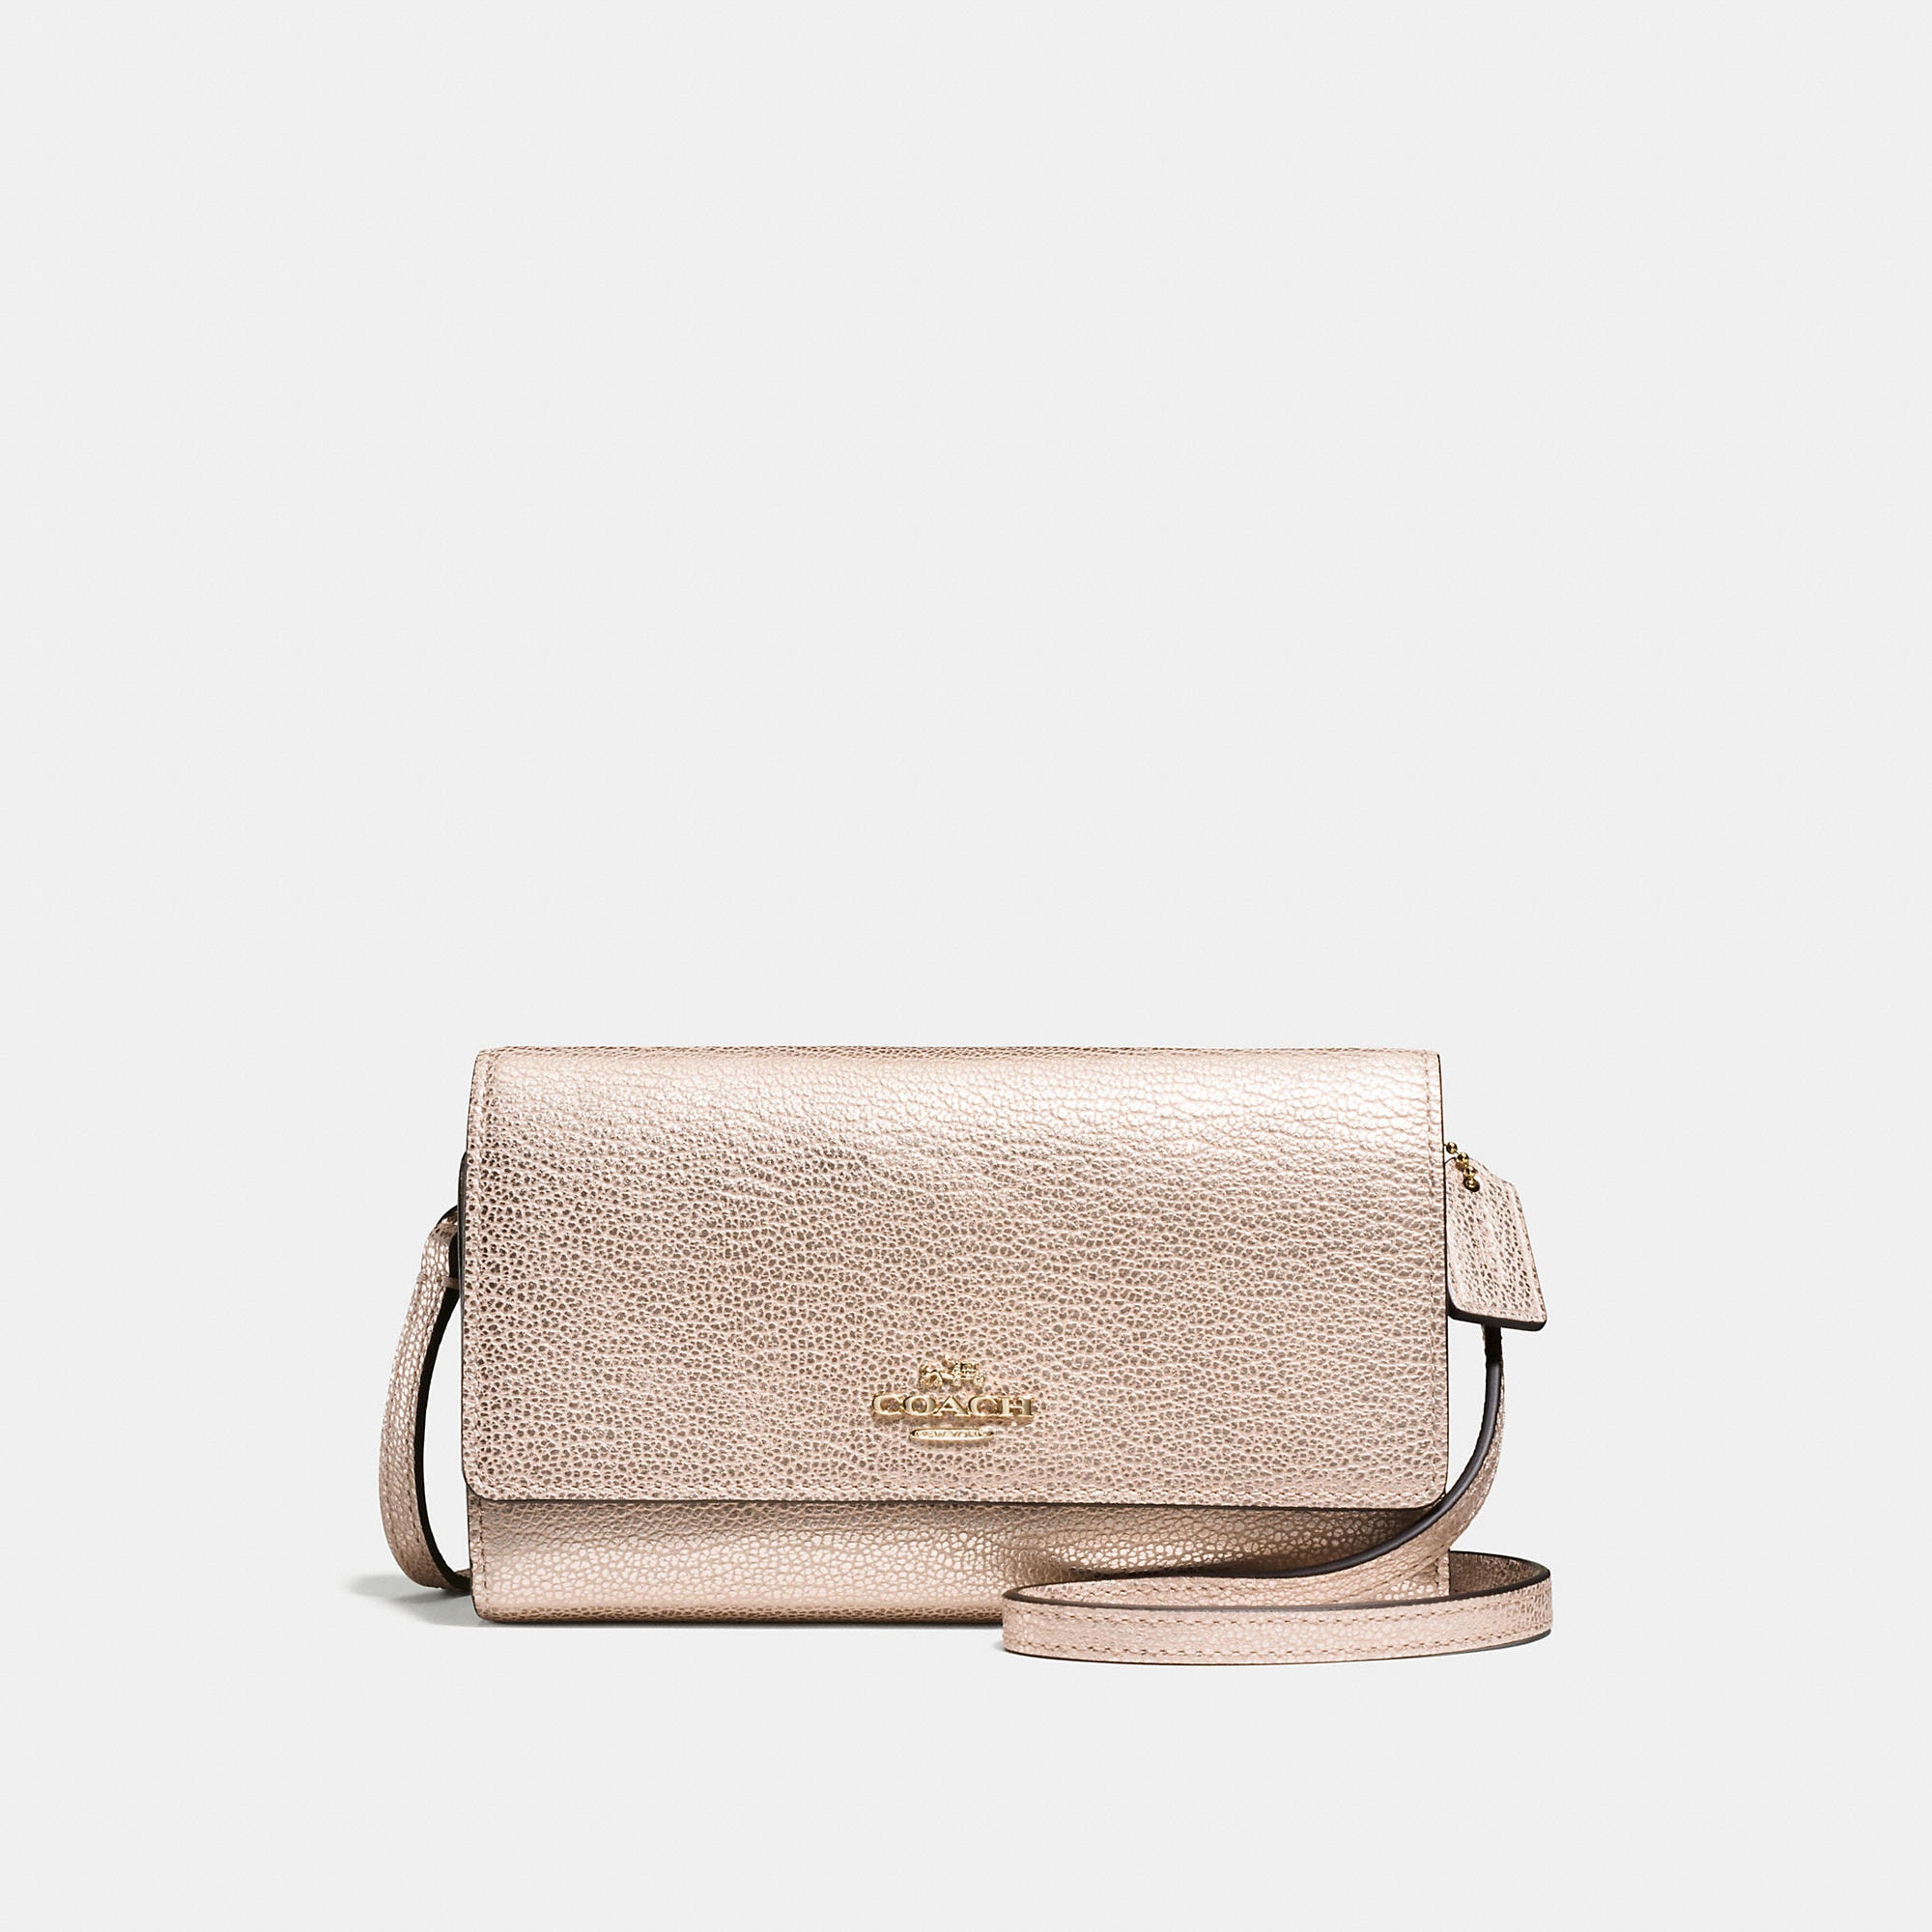 Coach Phone Crossbody